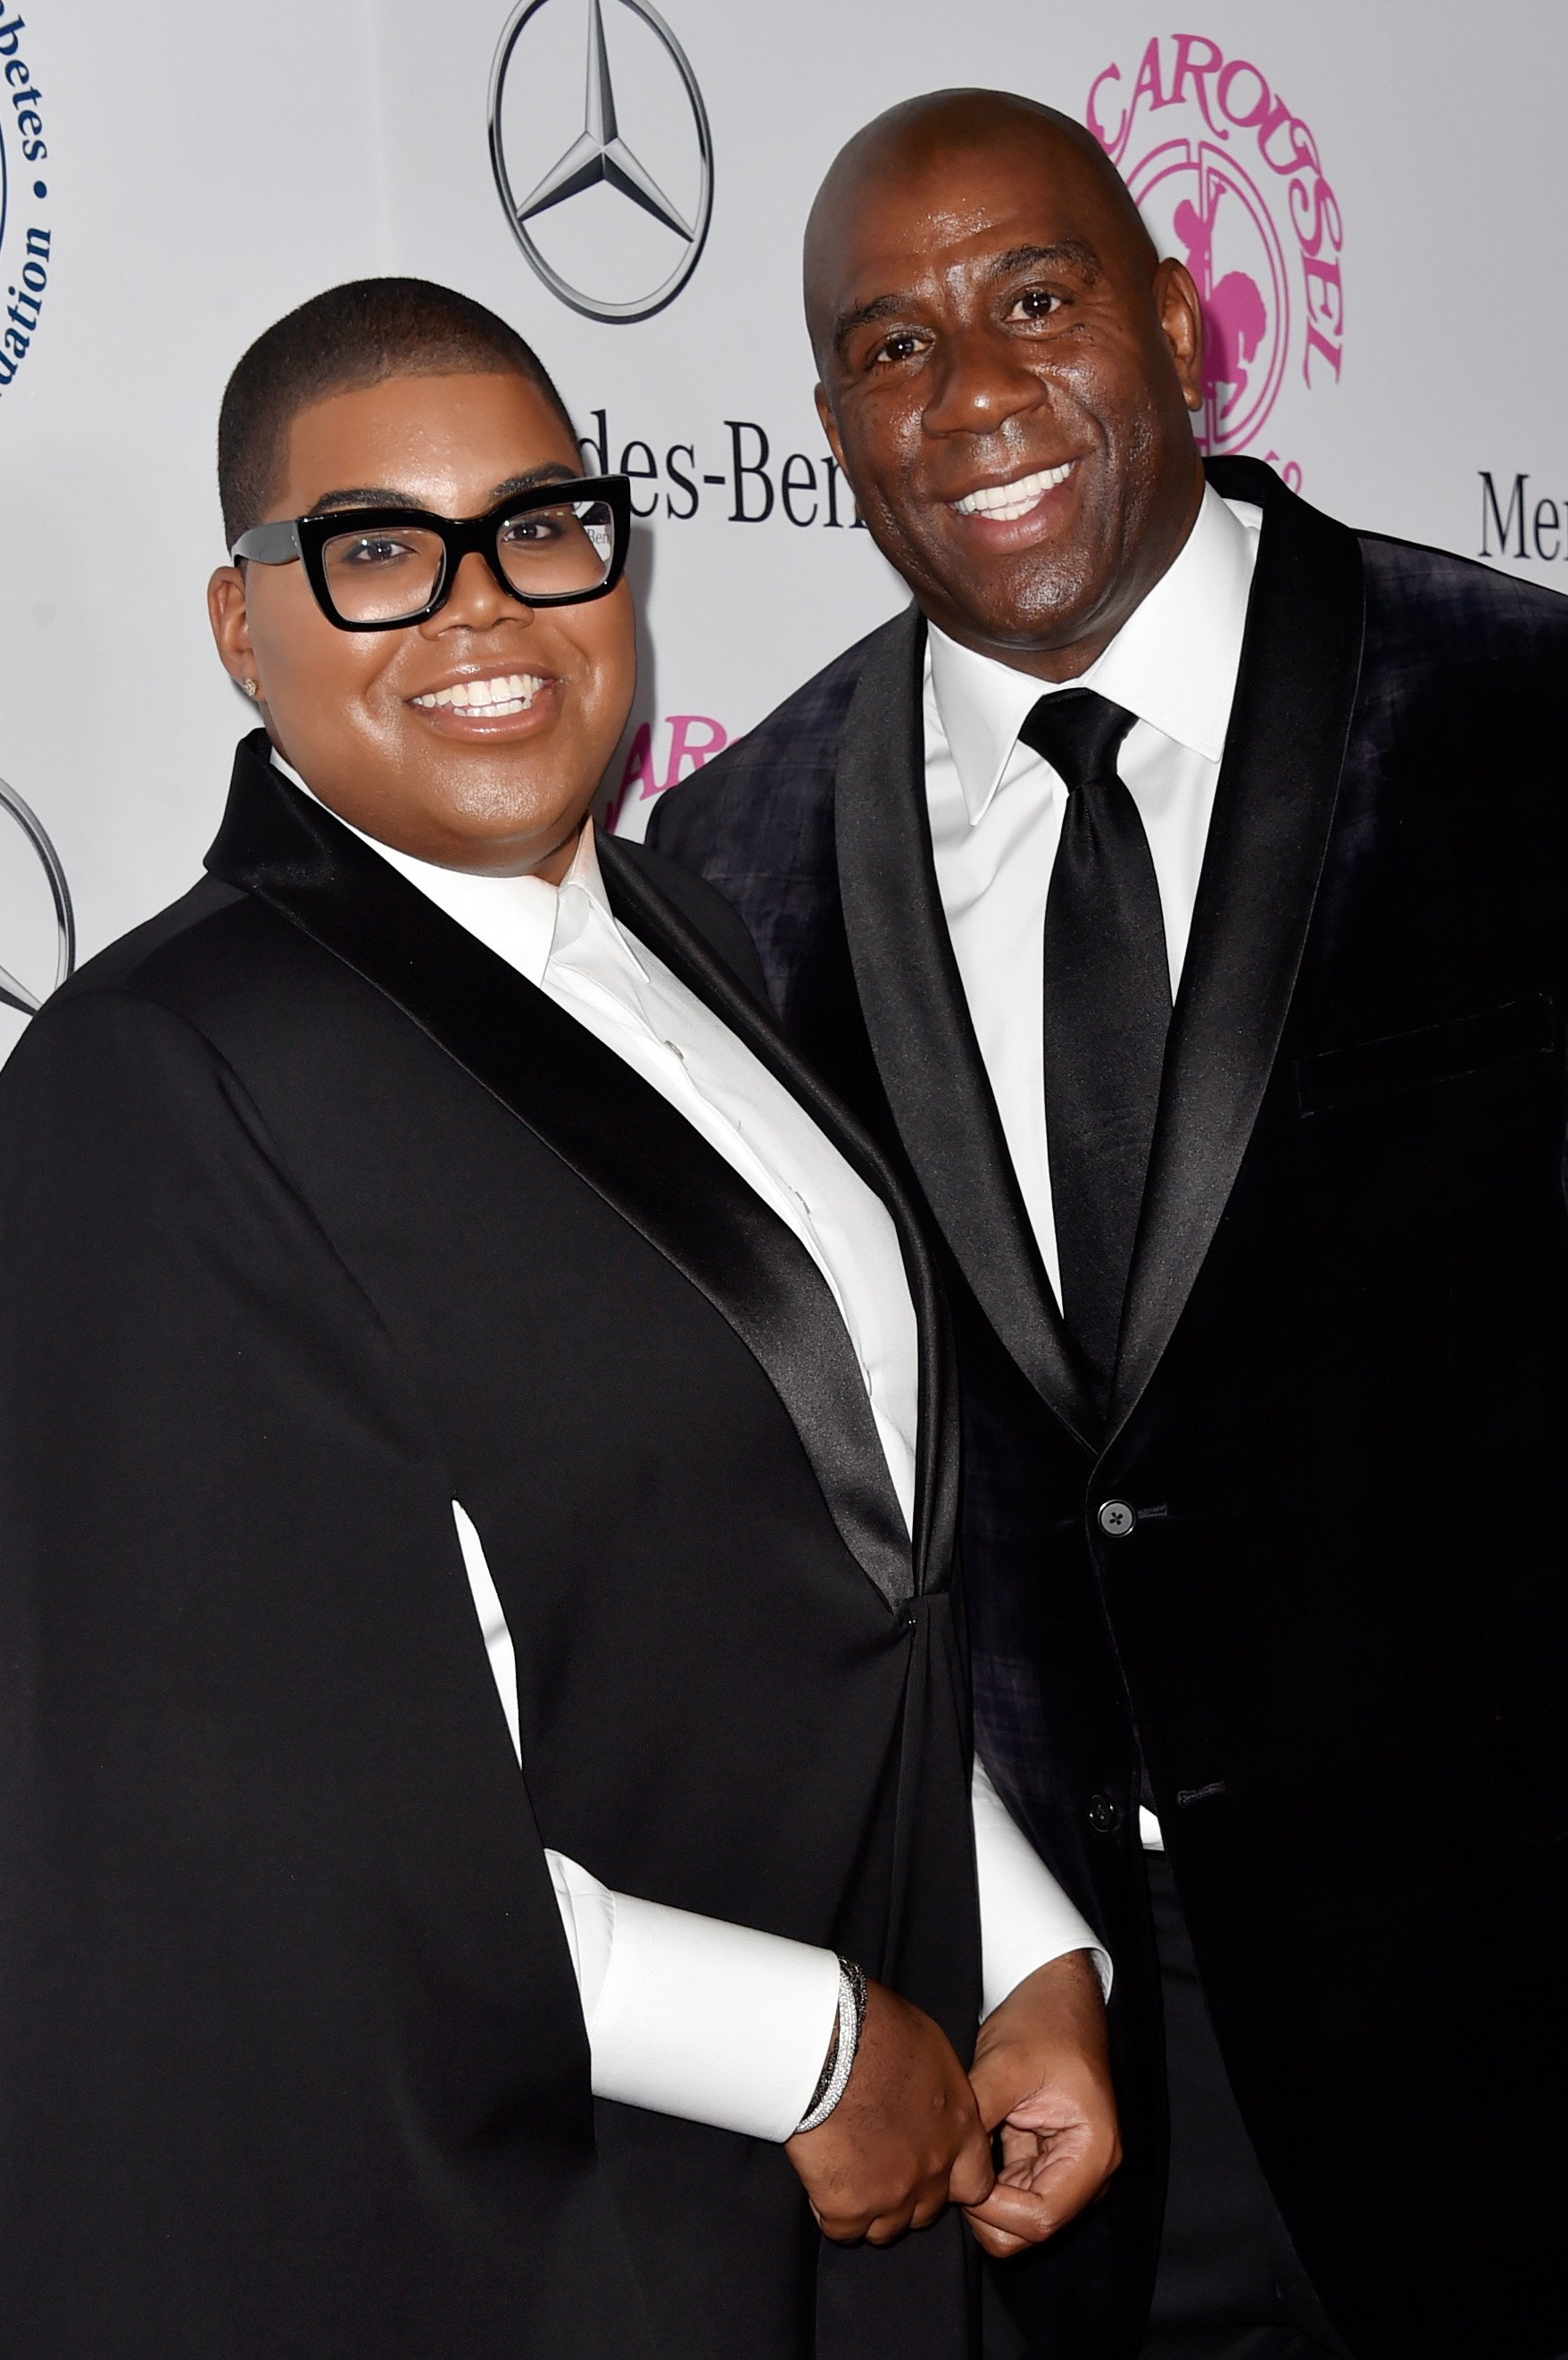 EJ Johnson and Magic Johnson at the 2014 Carousel of Hope Ball in Beverly Hills, California on October 11, 2014.   Photo: Getty Images